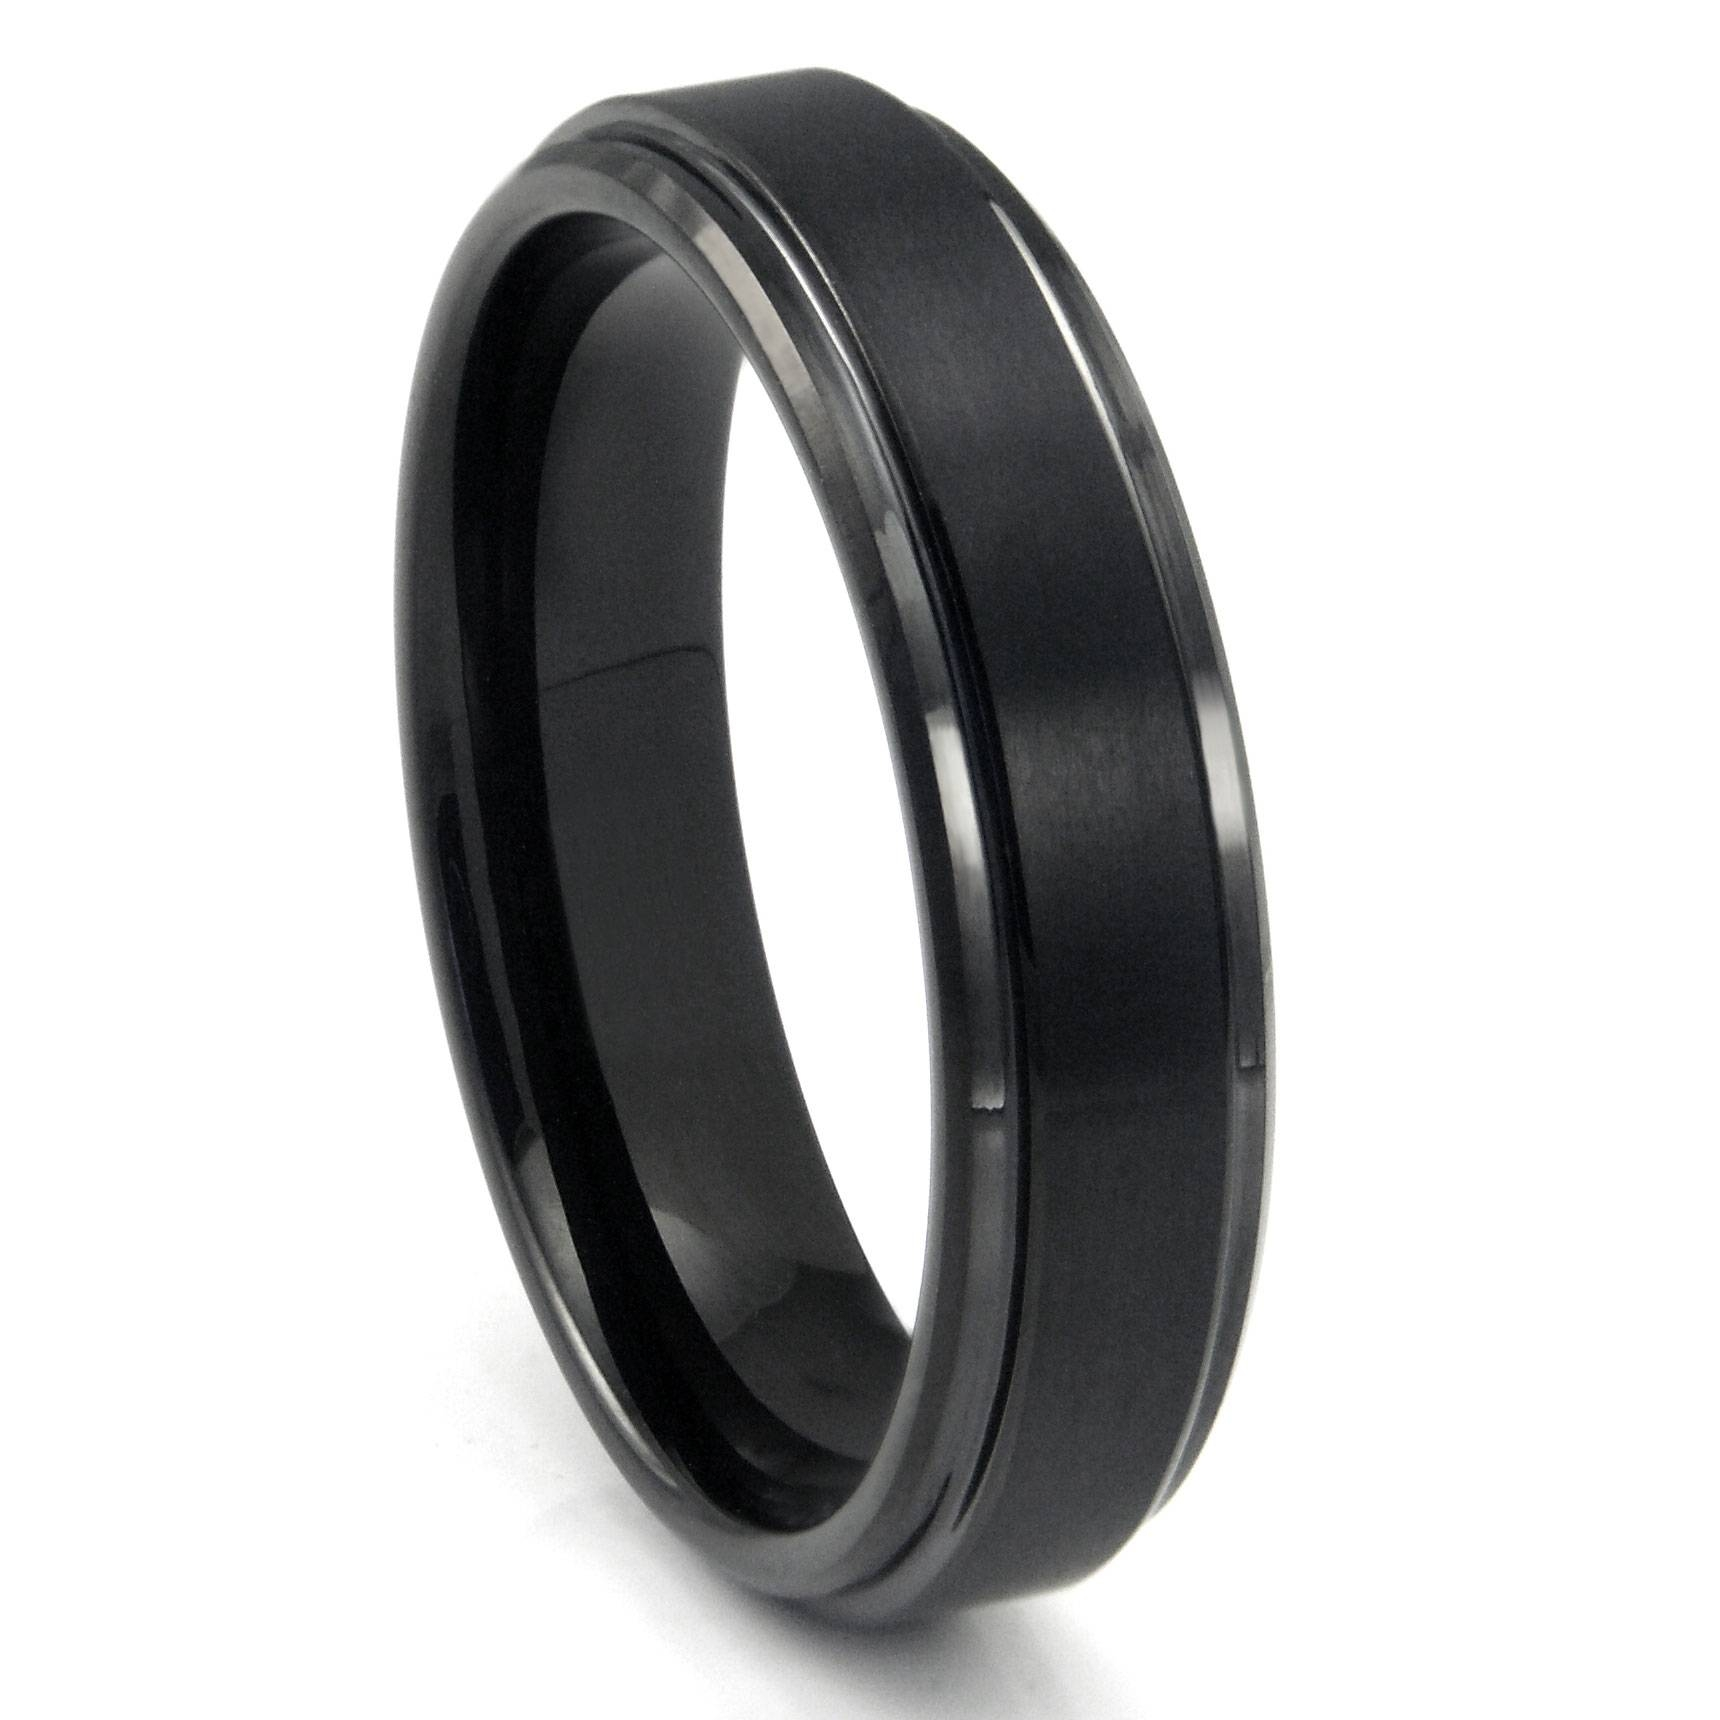 Mens Tungsten Rings & Wedding Bands – Titanium Kay Regarding Grey Tungsten Wedding Bands (View 5 of 15)